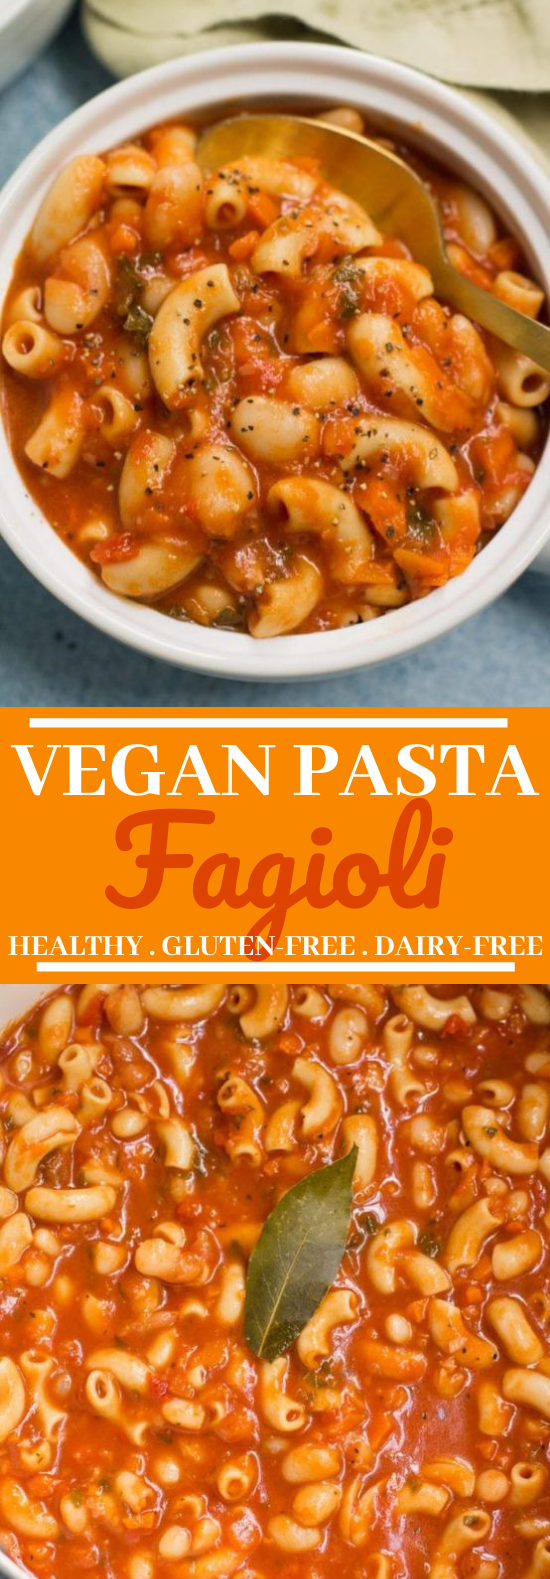 Vegan Pasta Fagioli #vegan #dinner